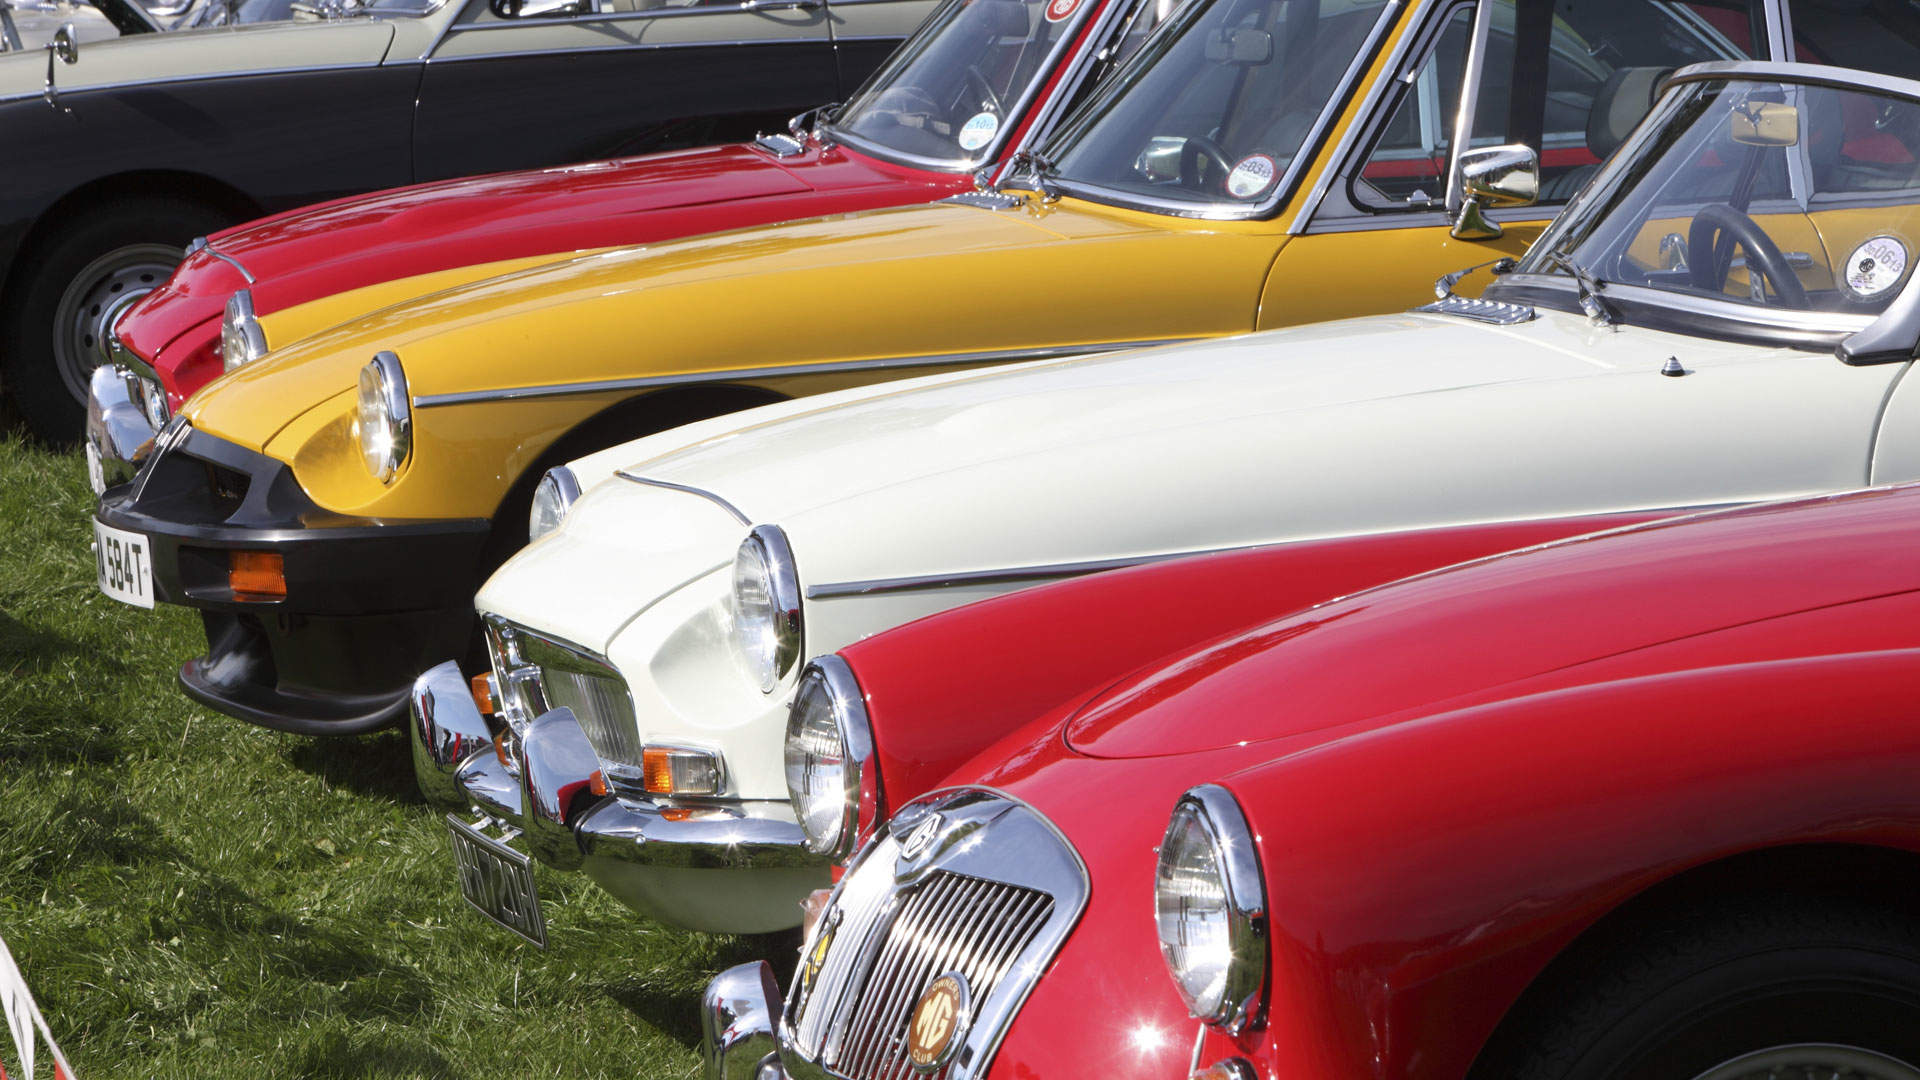 Buy a classic car over 40 years old to save on VED